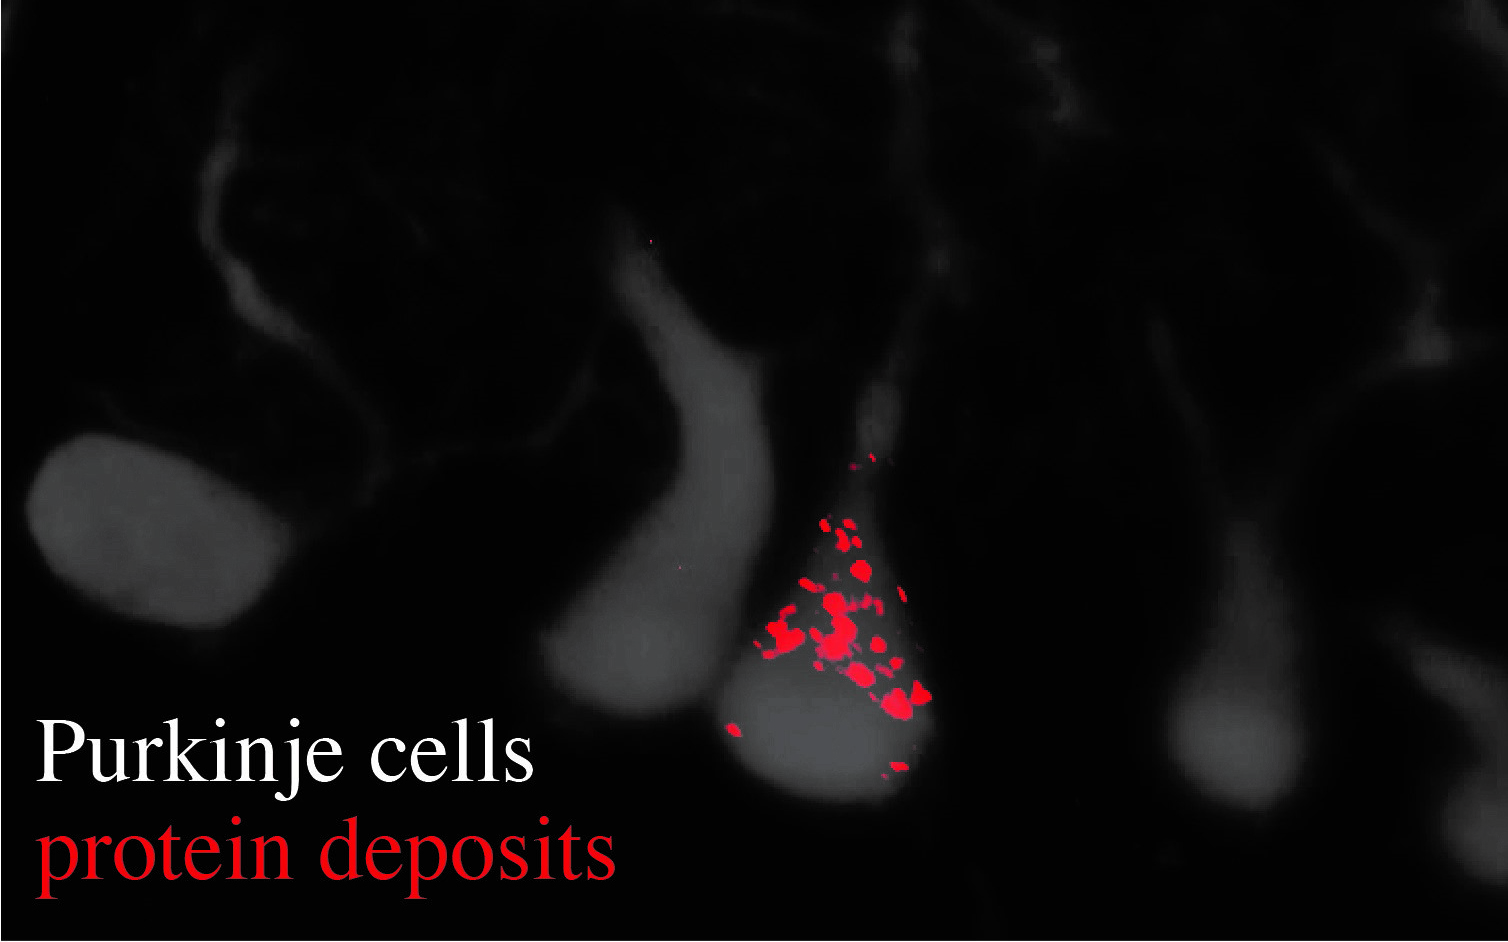 Microscopic image shows Purkinje cells and an accumulation of protein deposits.